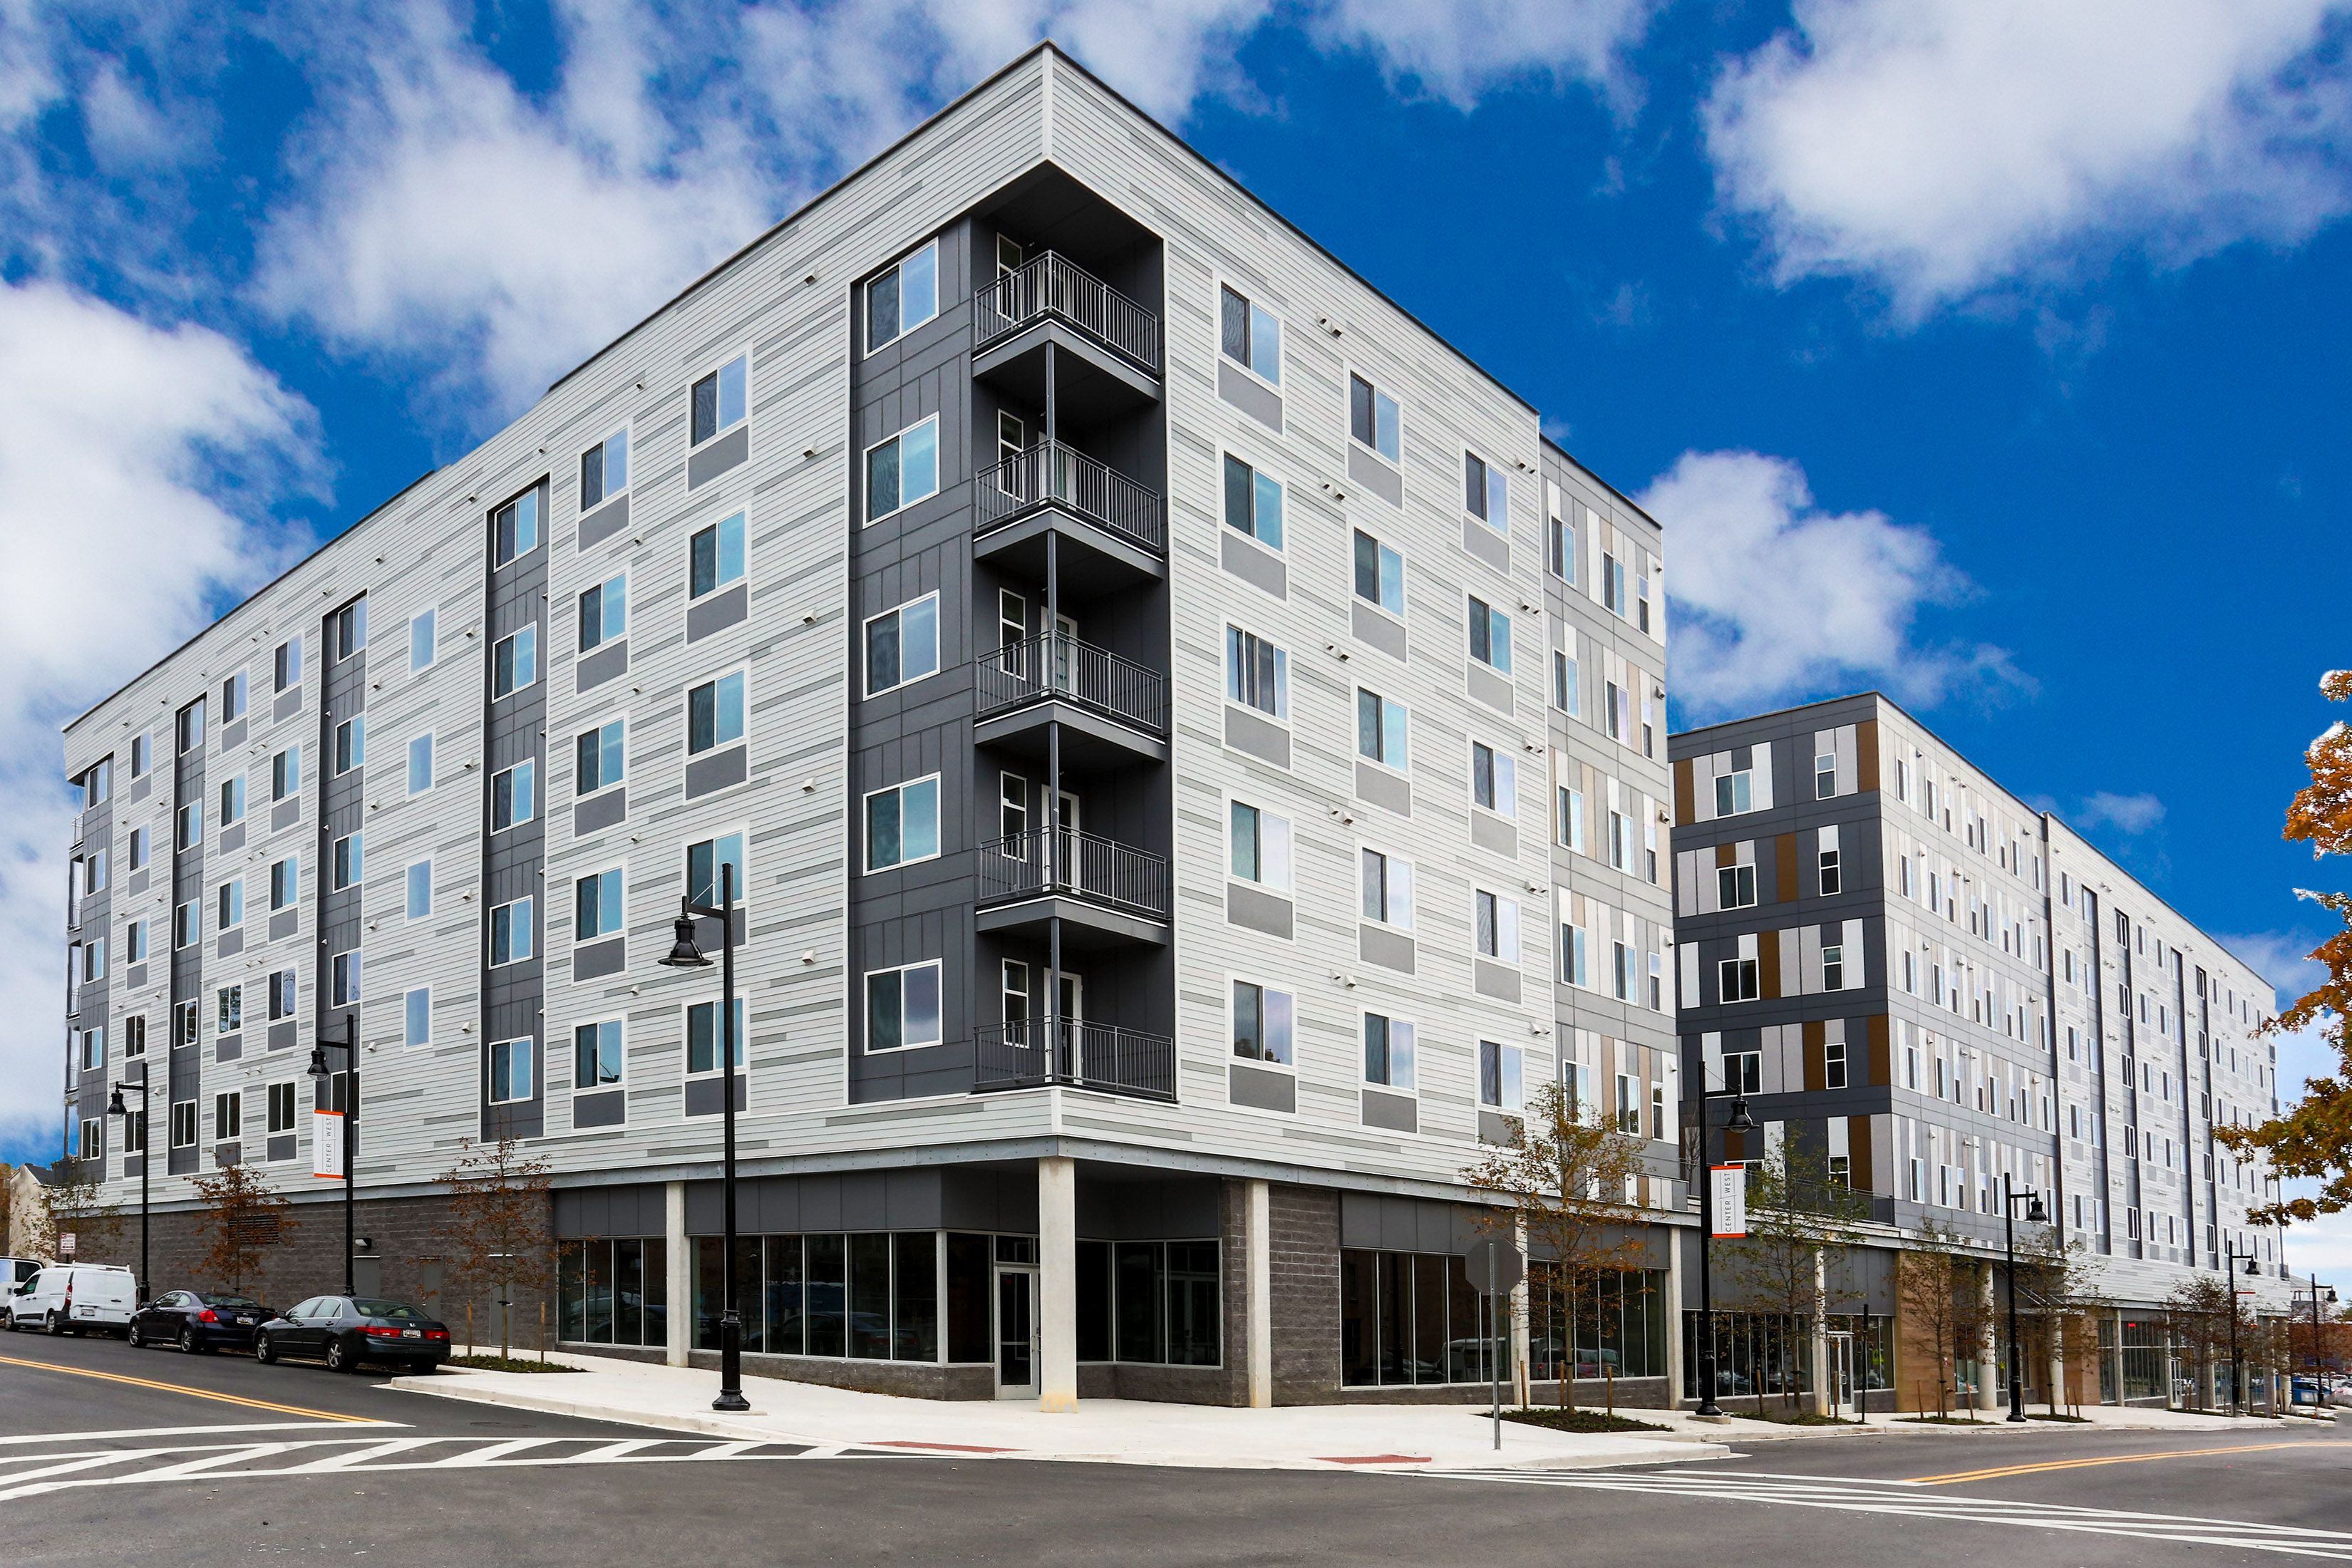 Apartments Near Hunt Valley Avra/Cirro for Hunt Valley Students in Hunt Valley, MD